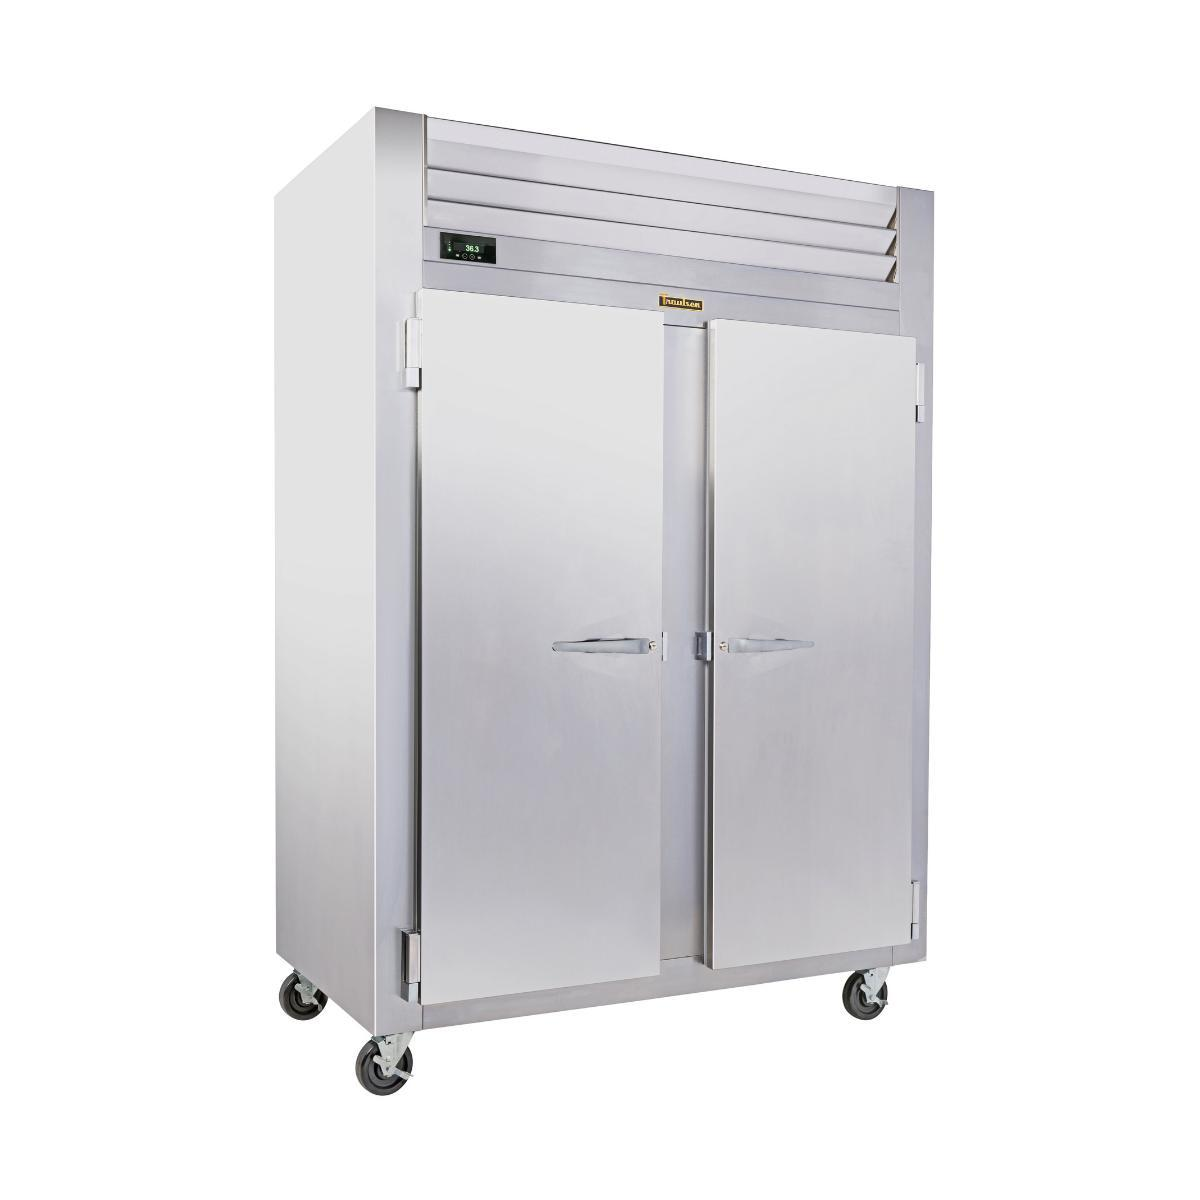 Traulsen RLT232WUT-FHS Stainless Steel 51.6 Cu. Ft. Two-Section Solid Door Reach-In Freezer